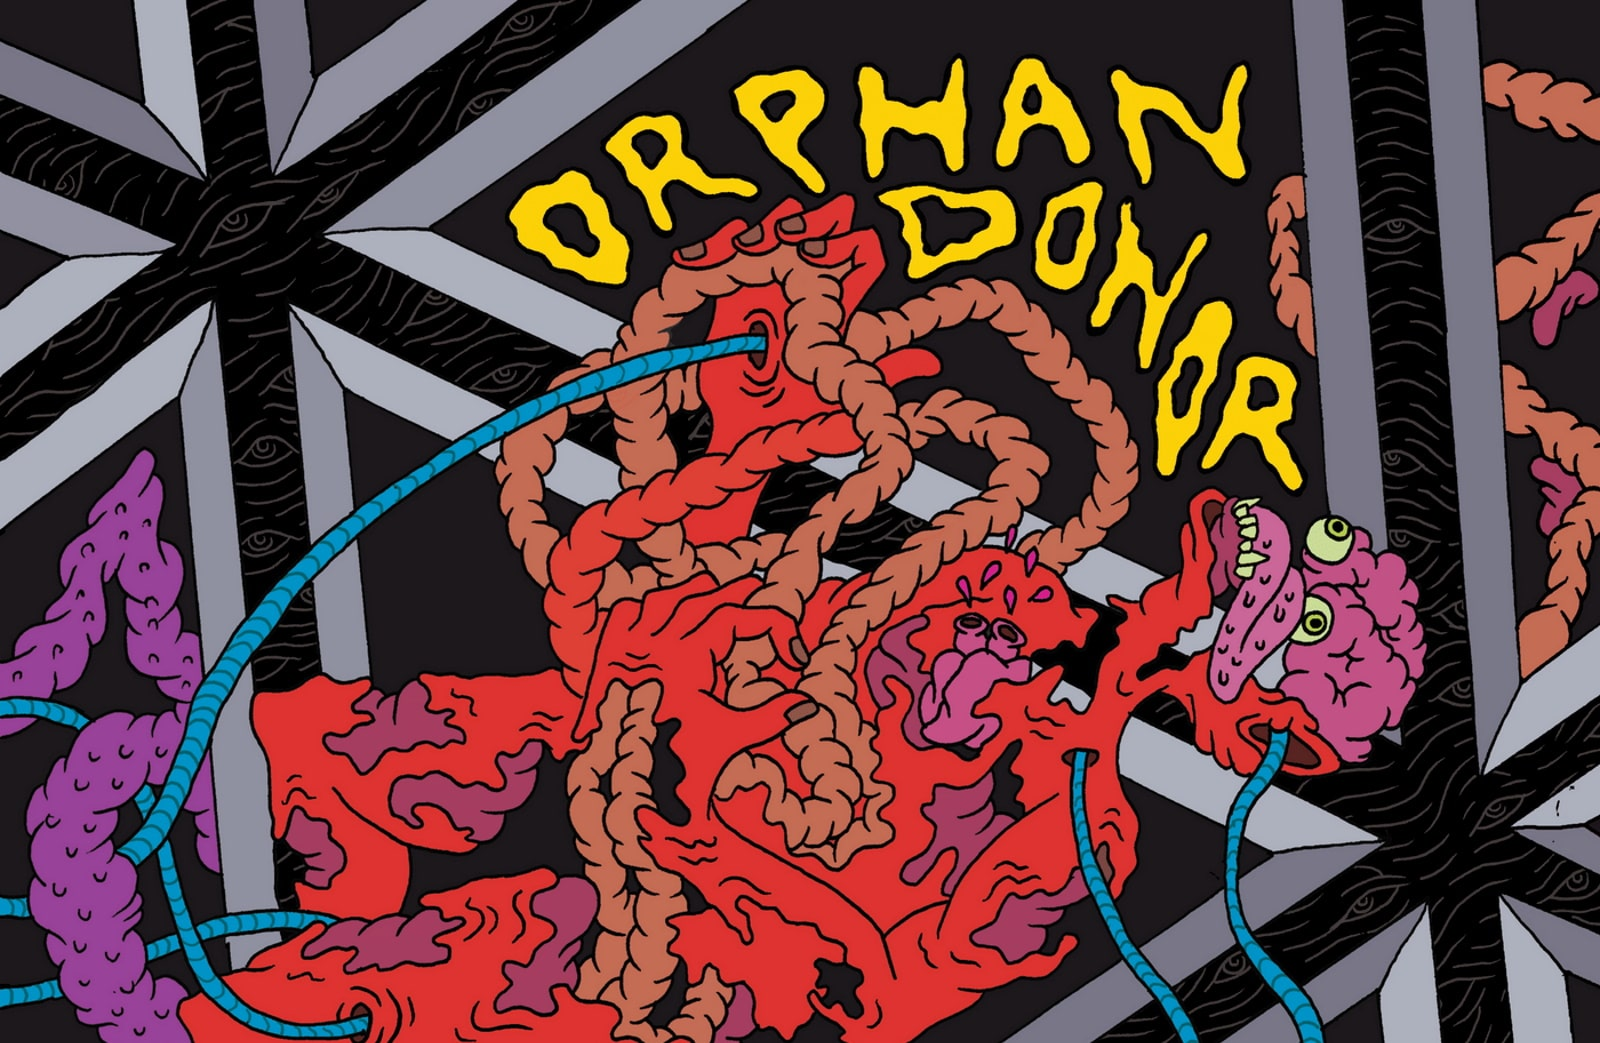 Orphan Donor